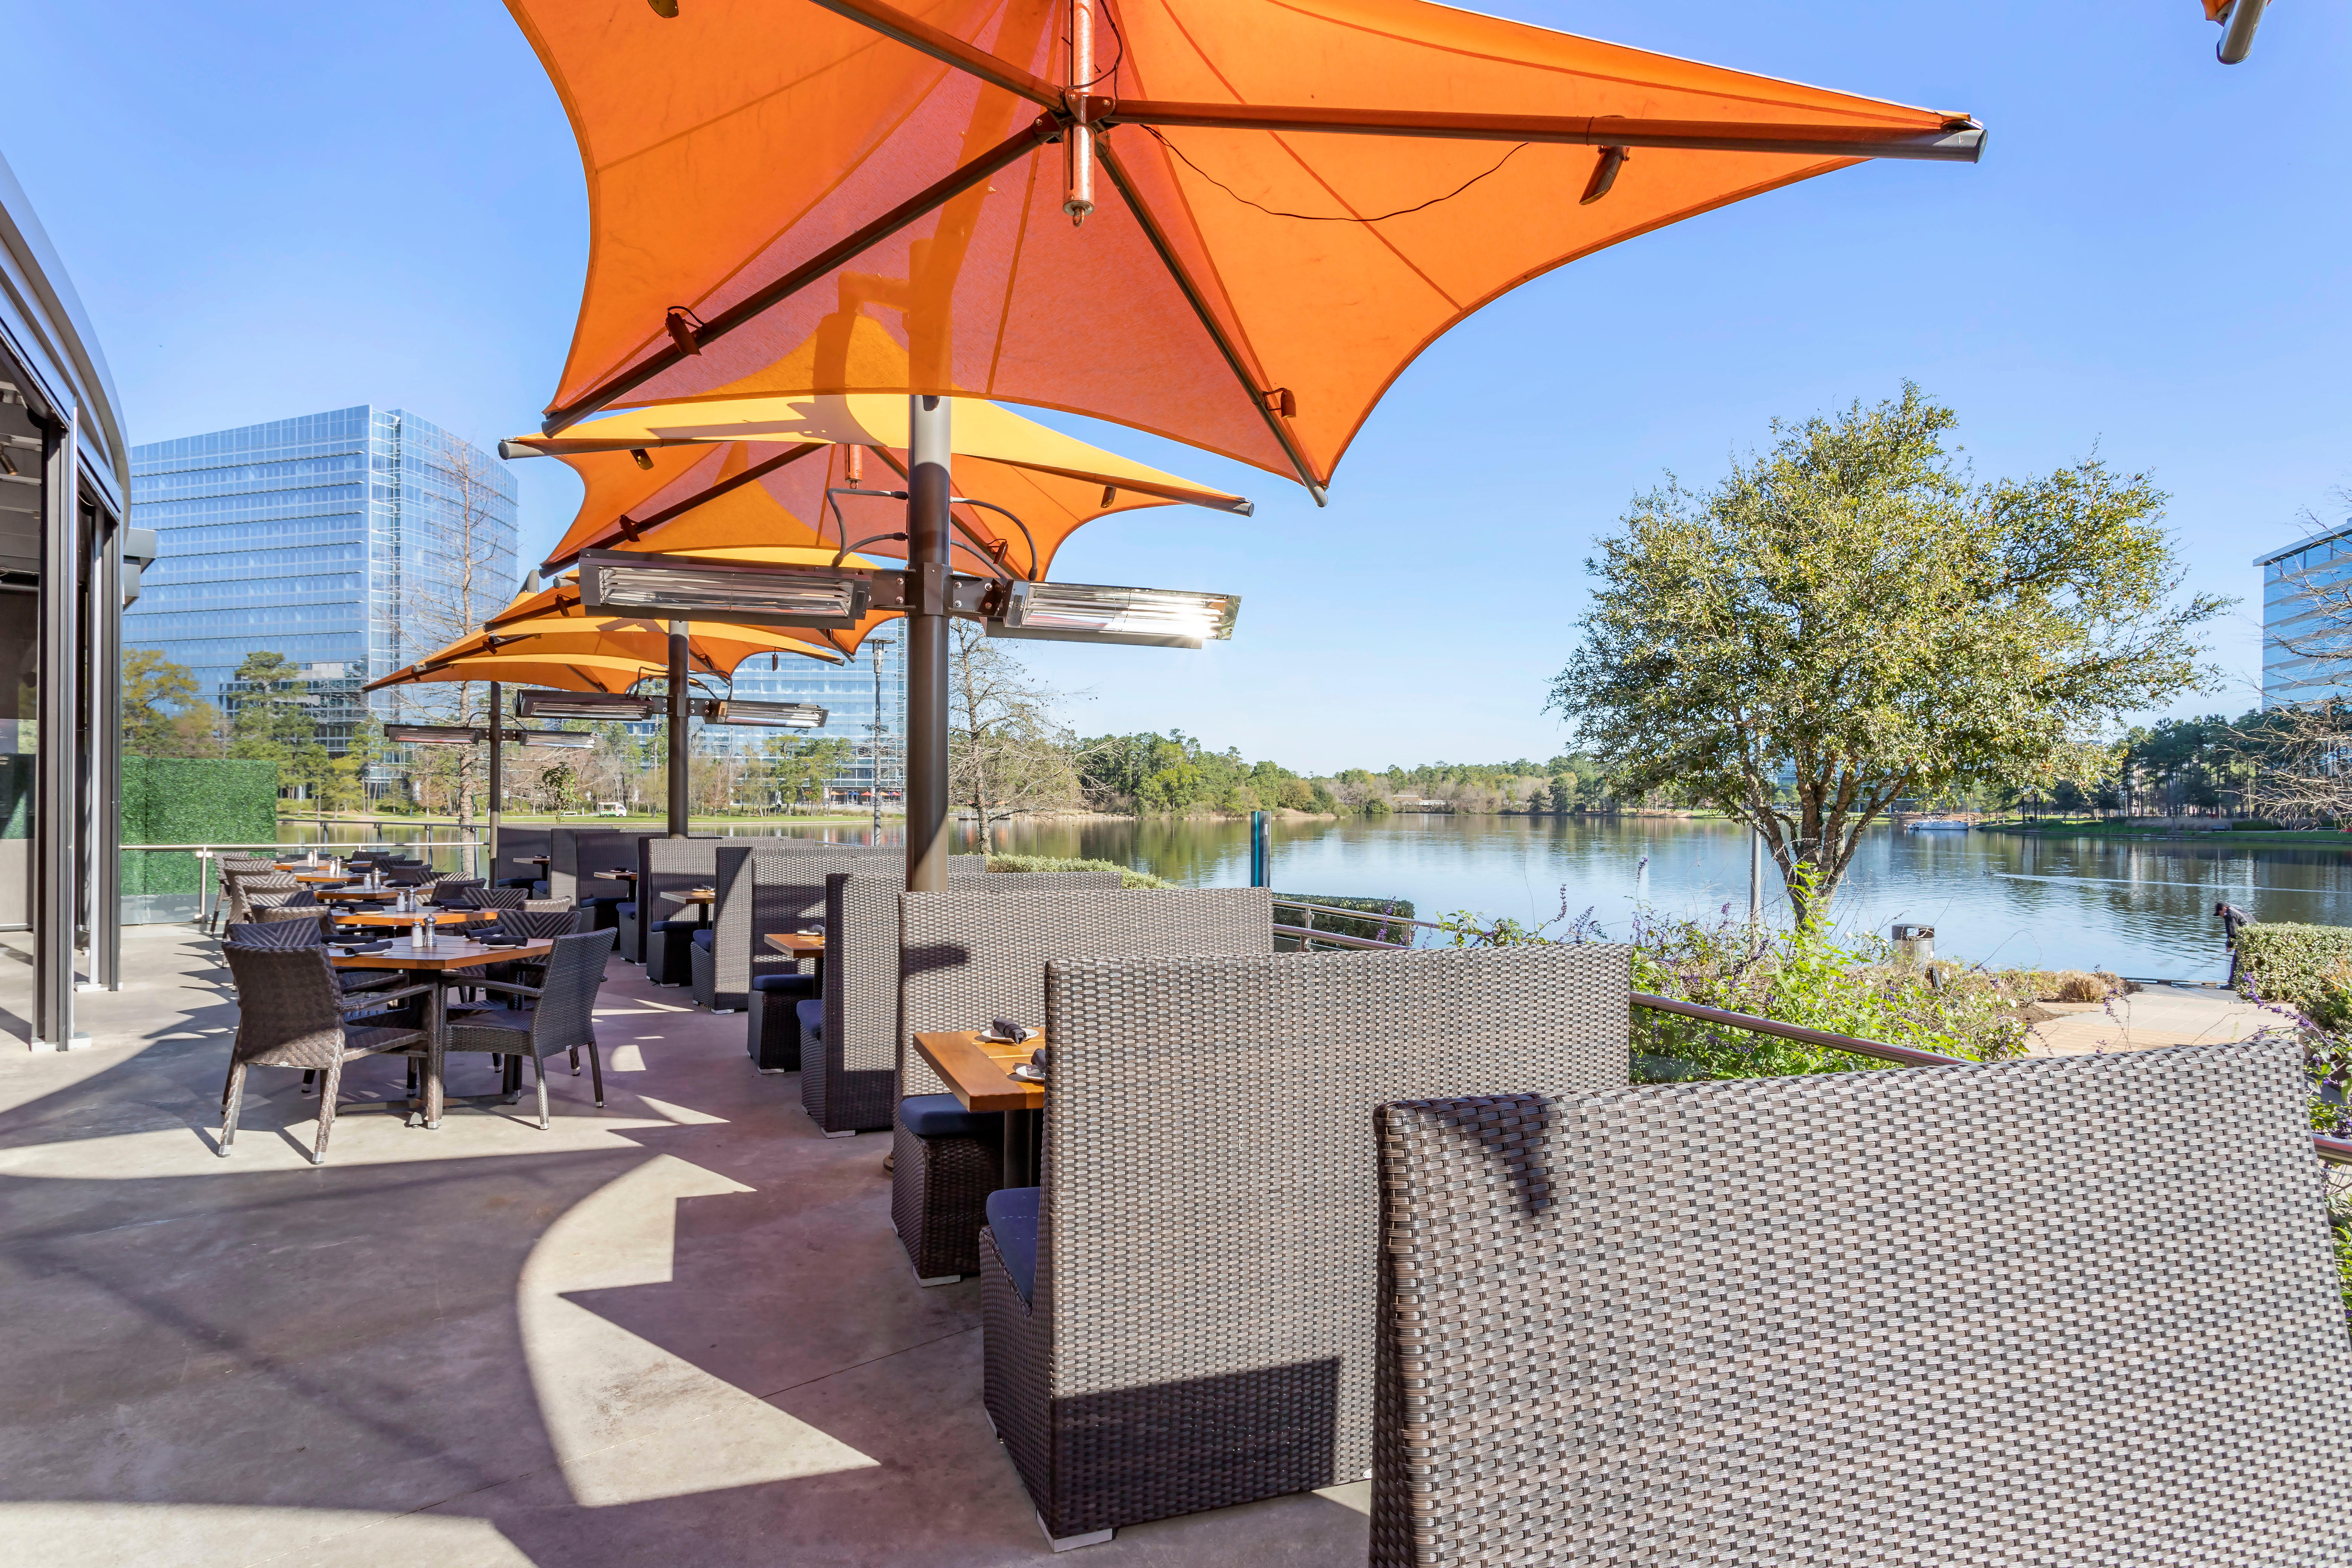 Del Frisco's Grille The Woodlands Patio group dining room